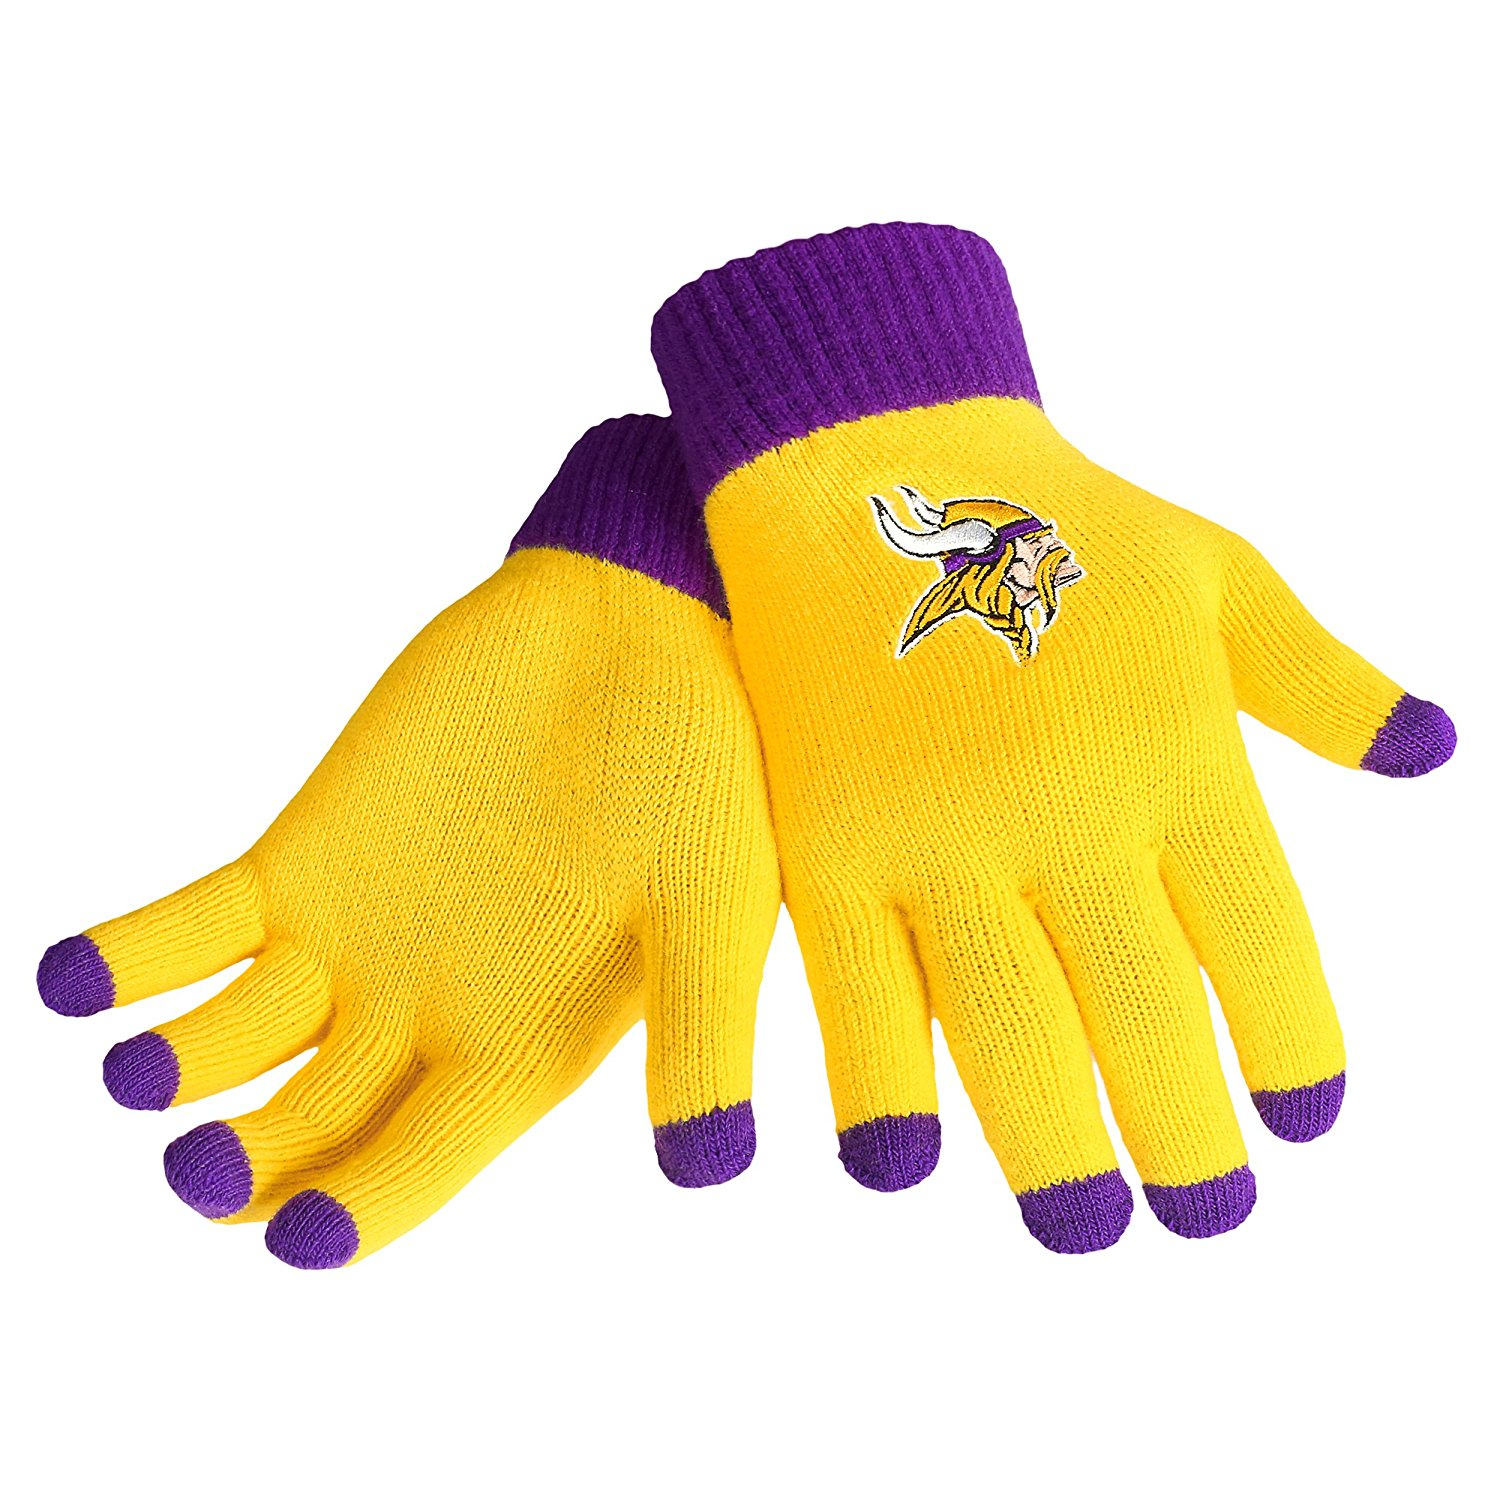 Buy Minnesota Vikings Gold And Purple Texting Gloves In